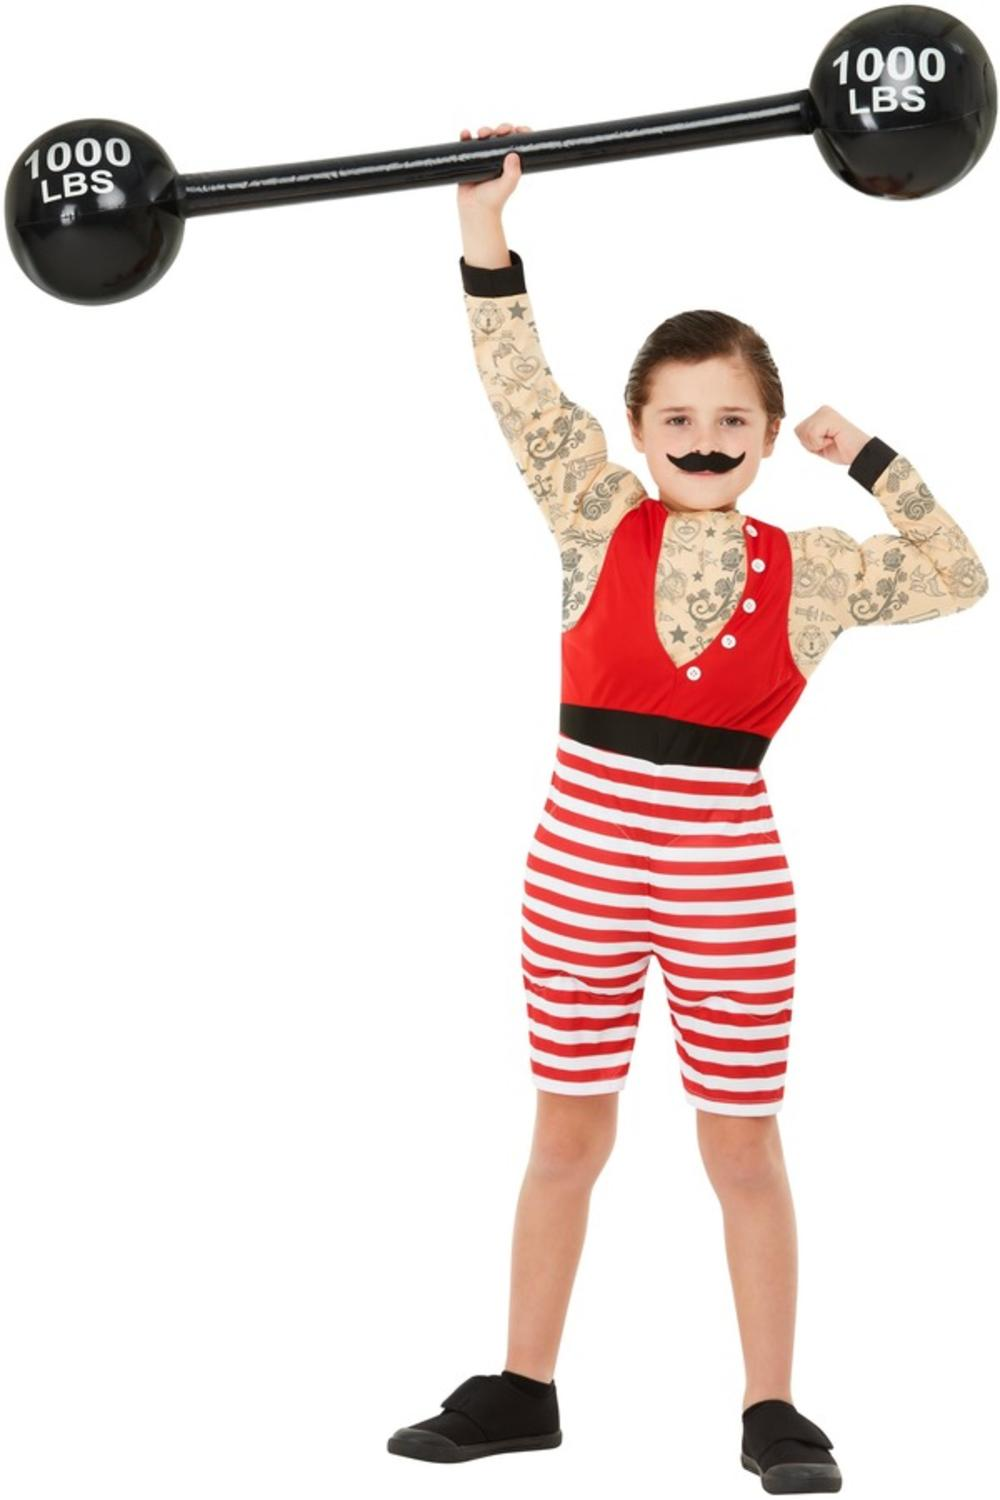 Deluxe Strong Boy Kids Fancy Dress Body Builder Boys Circus Costume Child Outfit